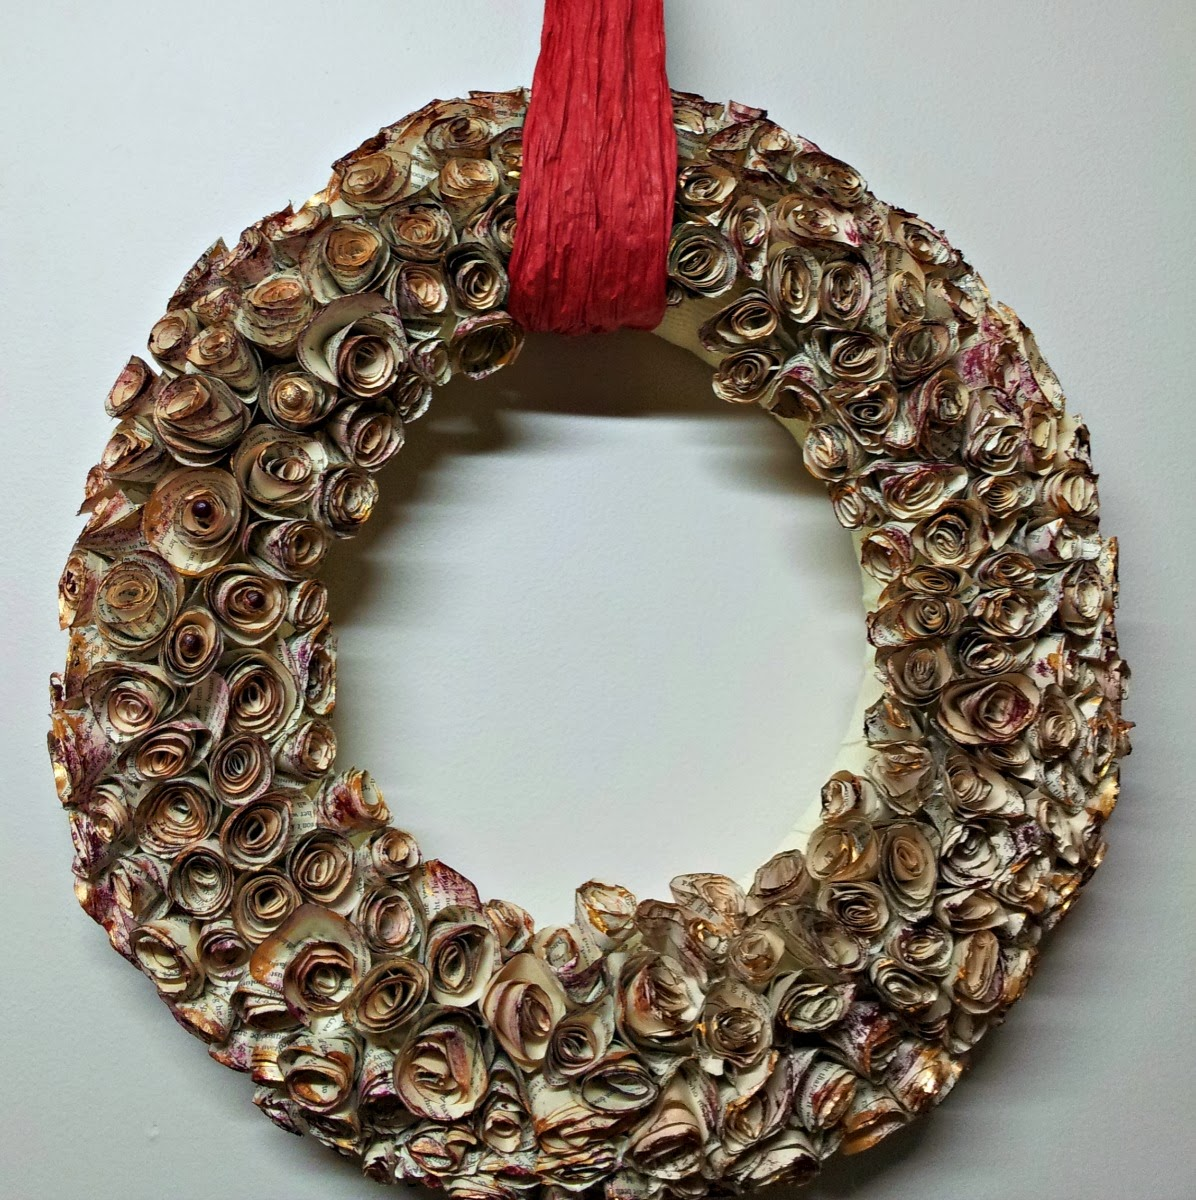 Spiral Rose Wreath Tutorial by Ann Martin